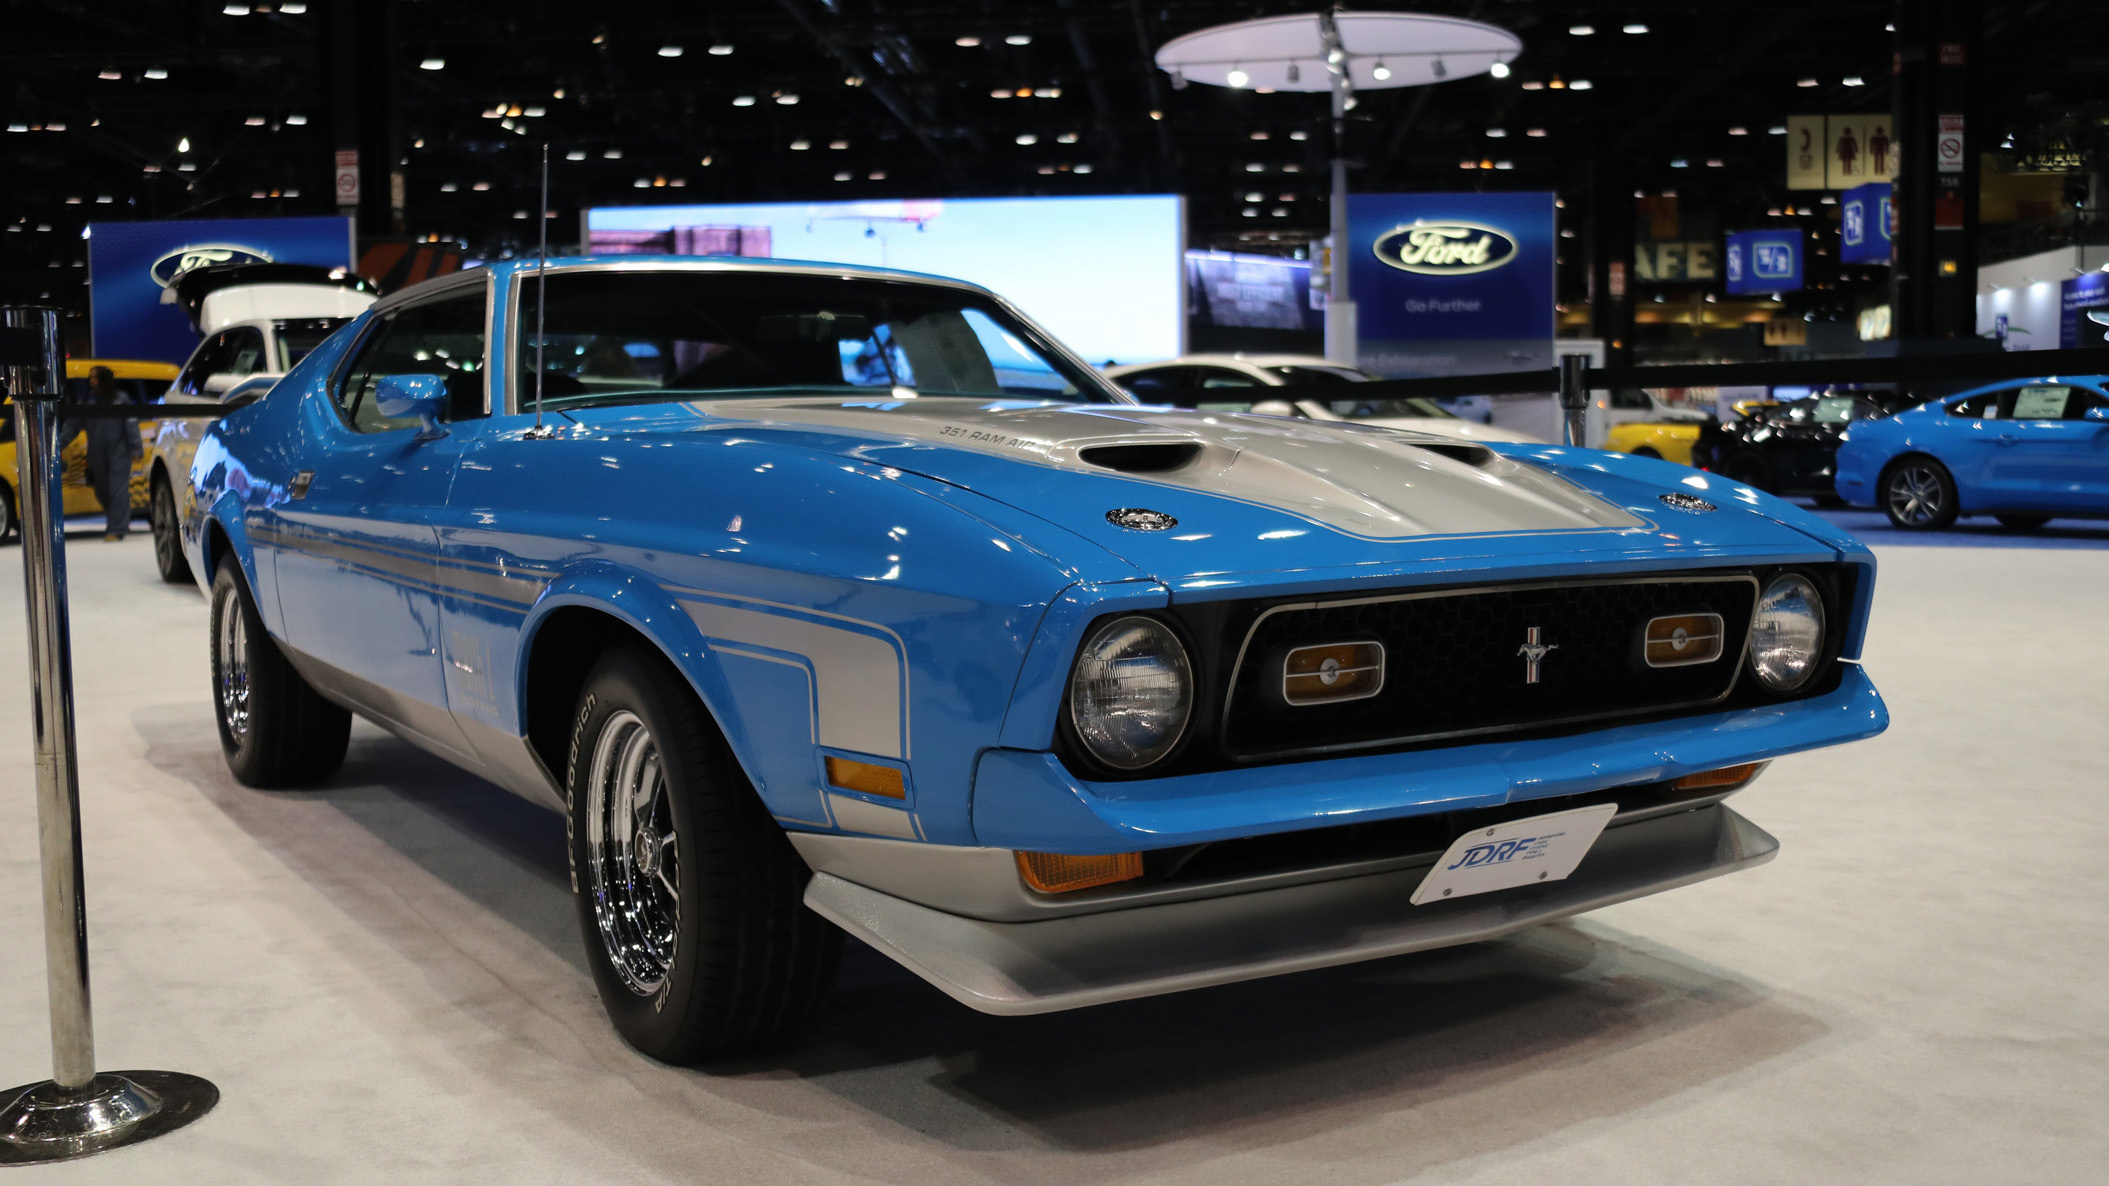 1971 ford mustang mach 1 - Ford Mustang Cobra Jet Engine